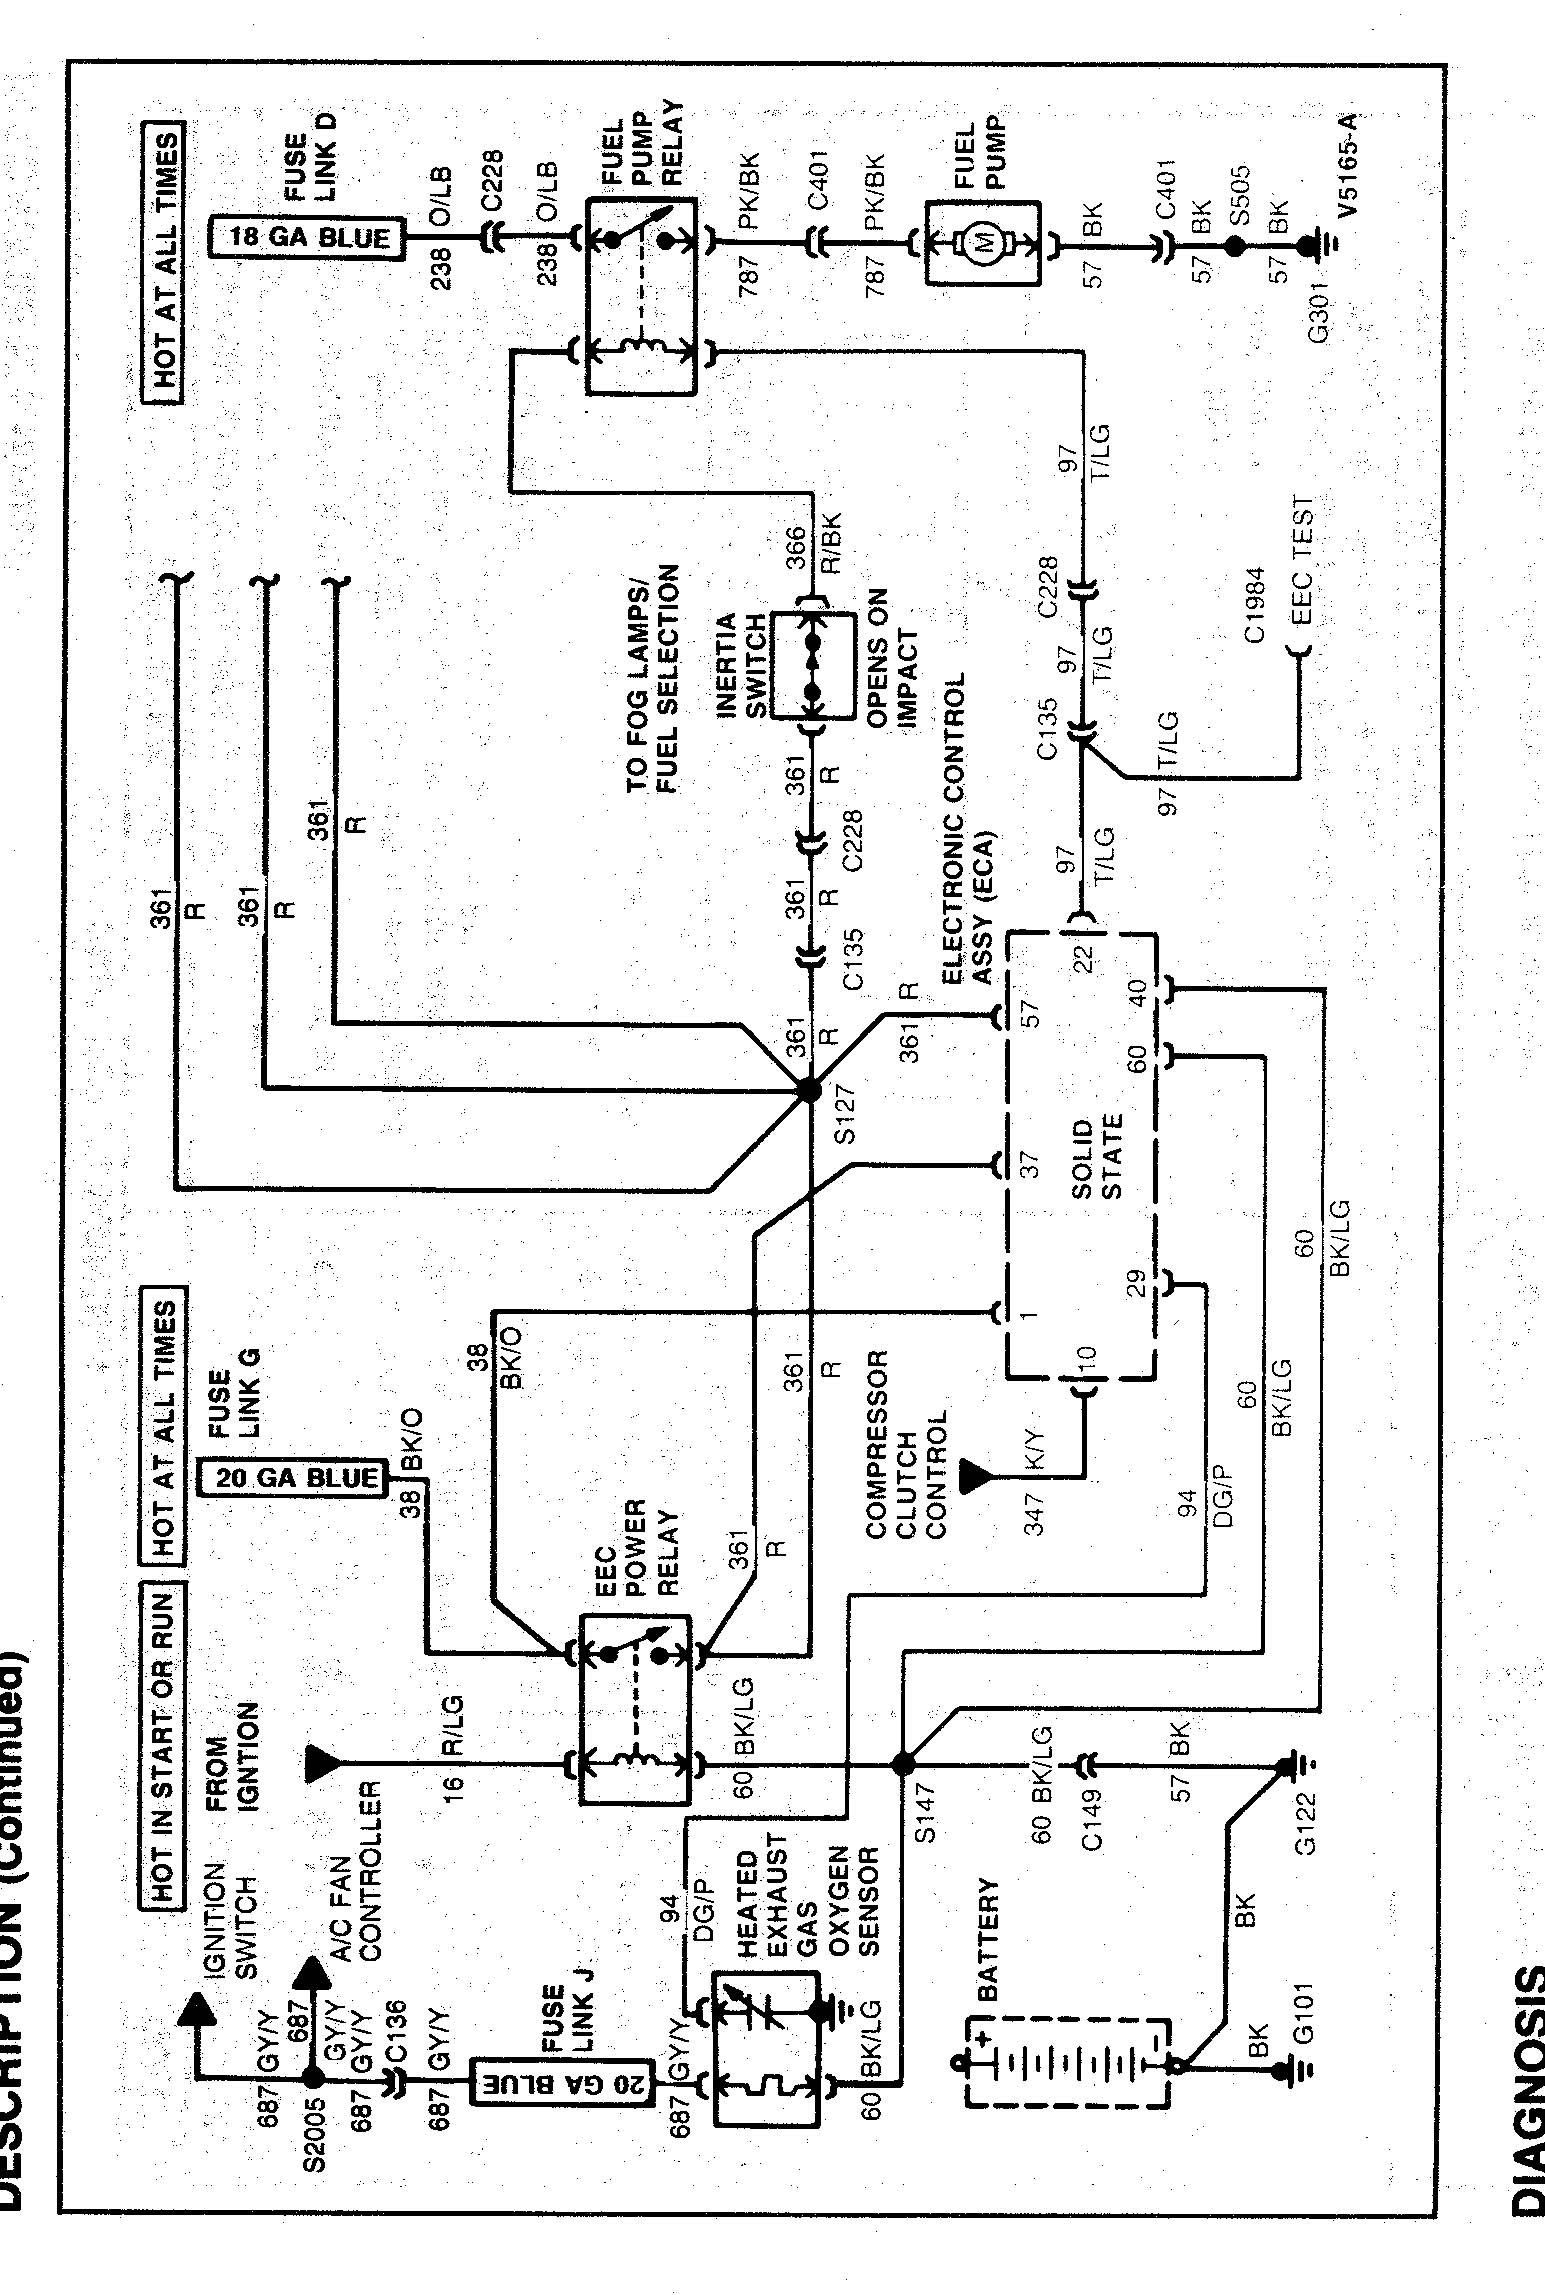 hight resolution of 1951d1051749150 need help fuel pump switch mustangfuelelectricaldiagram2 anyone know how to wire fuel pump for switch